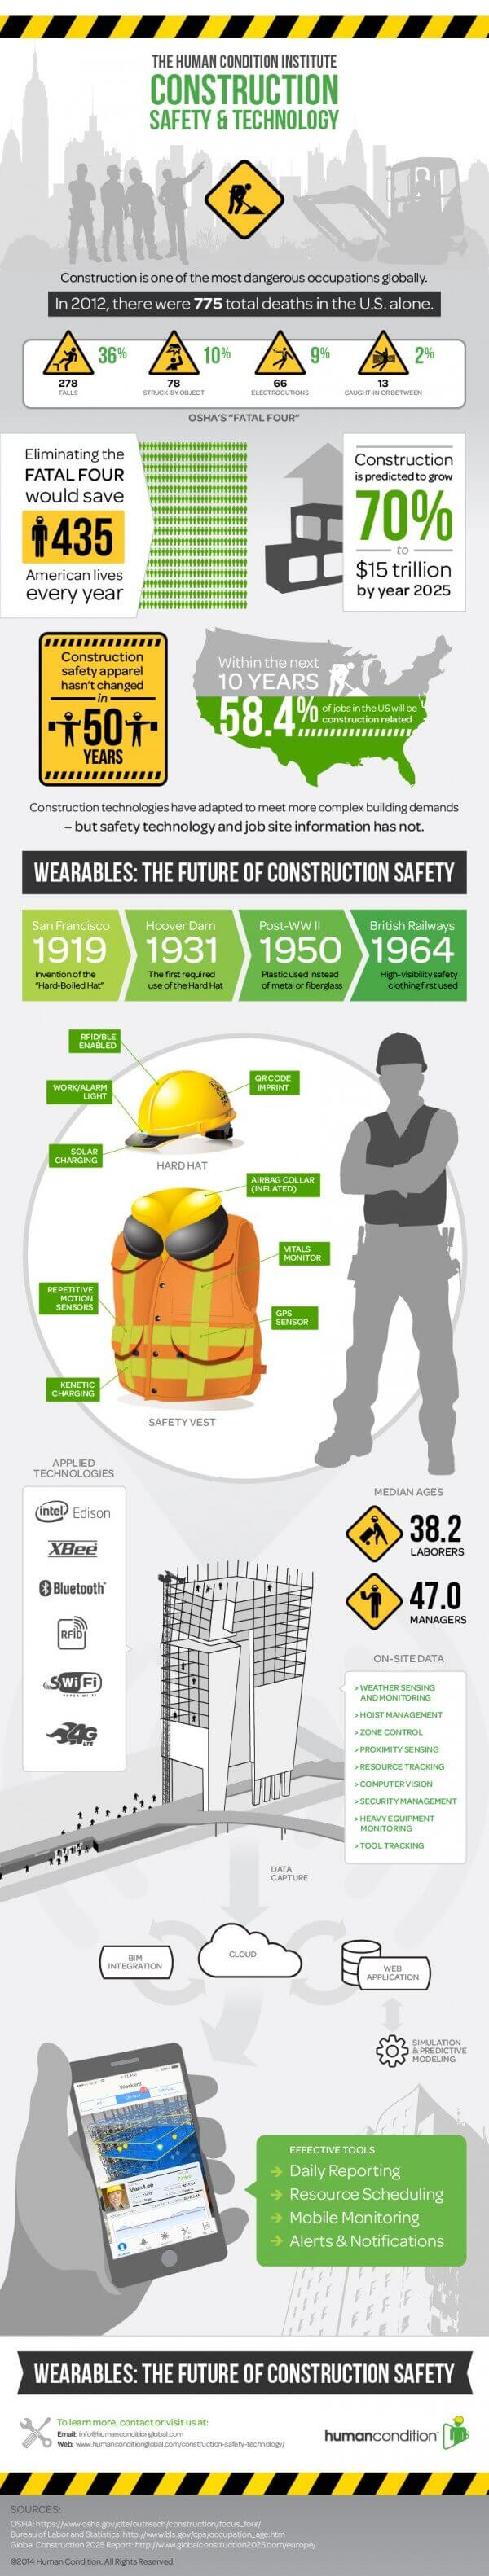 Wearables: The Future of Construction Safety